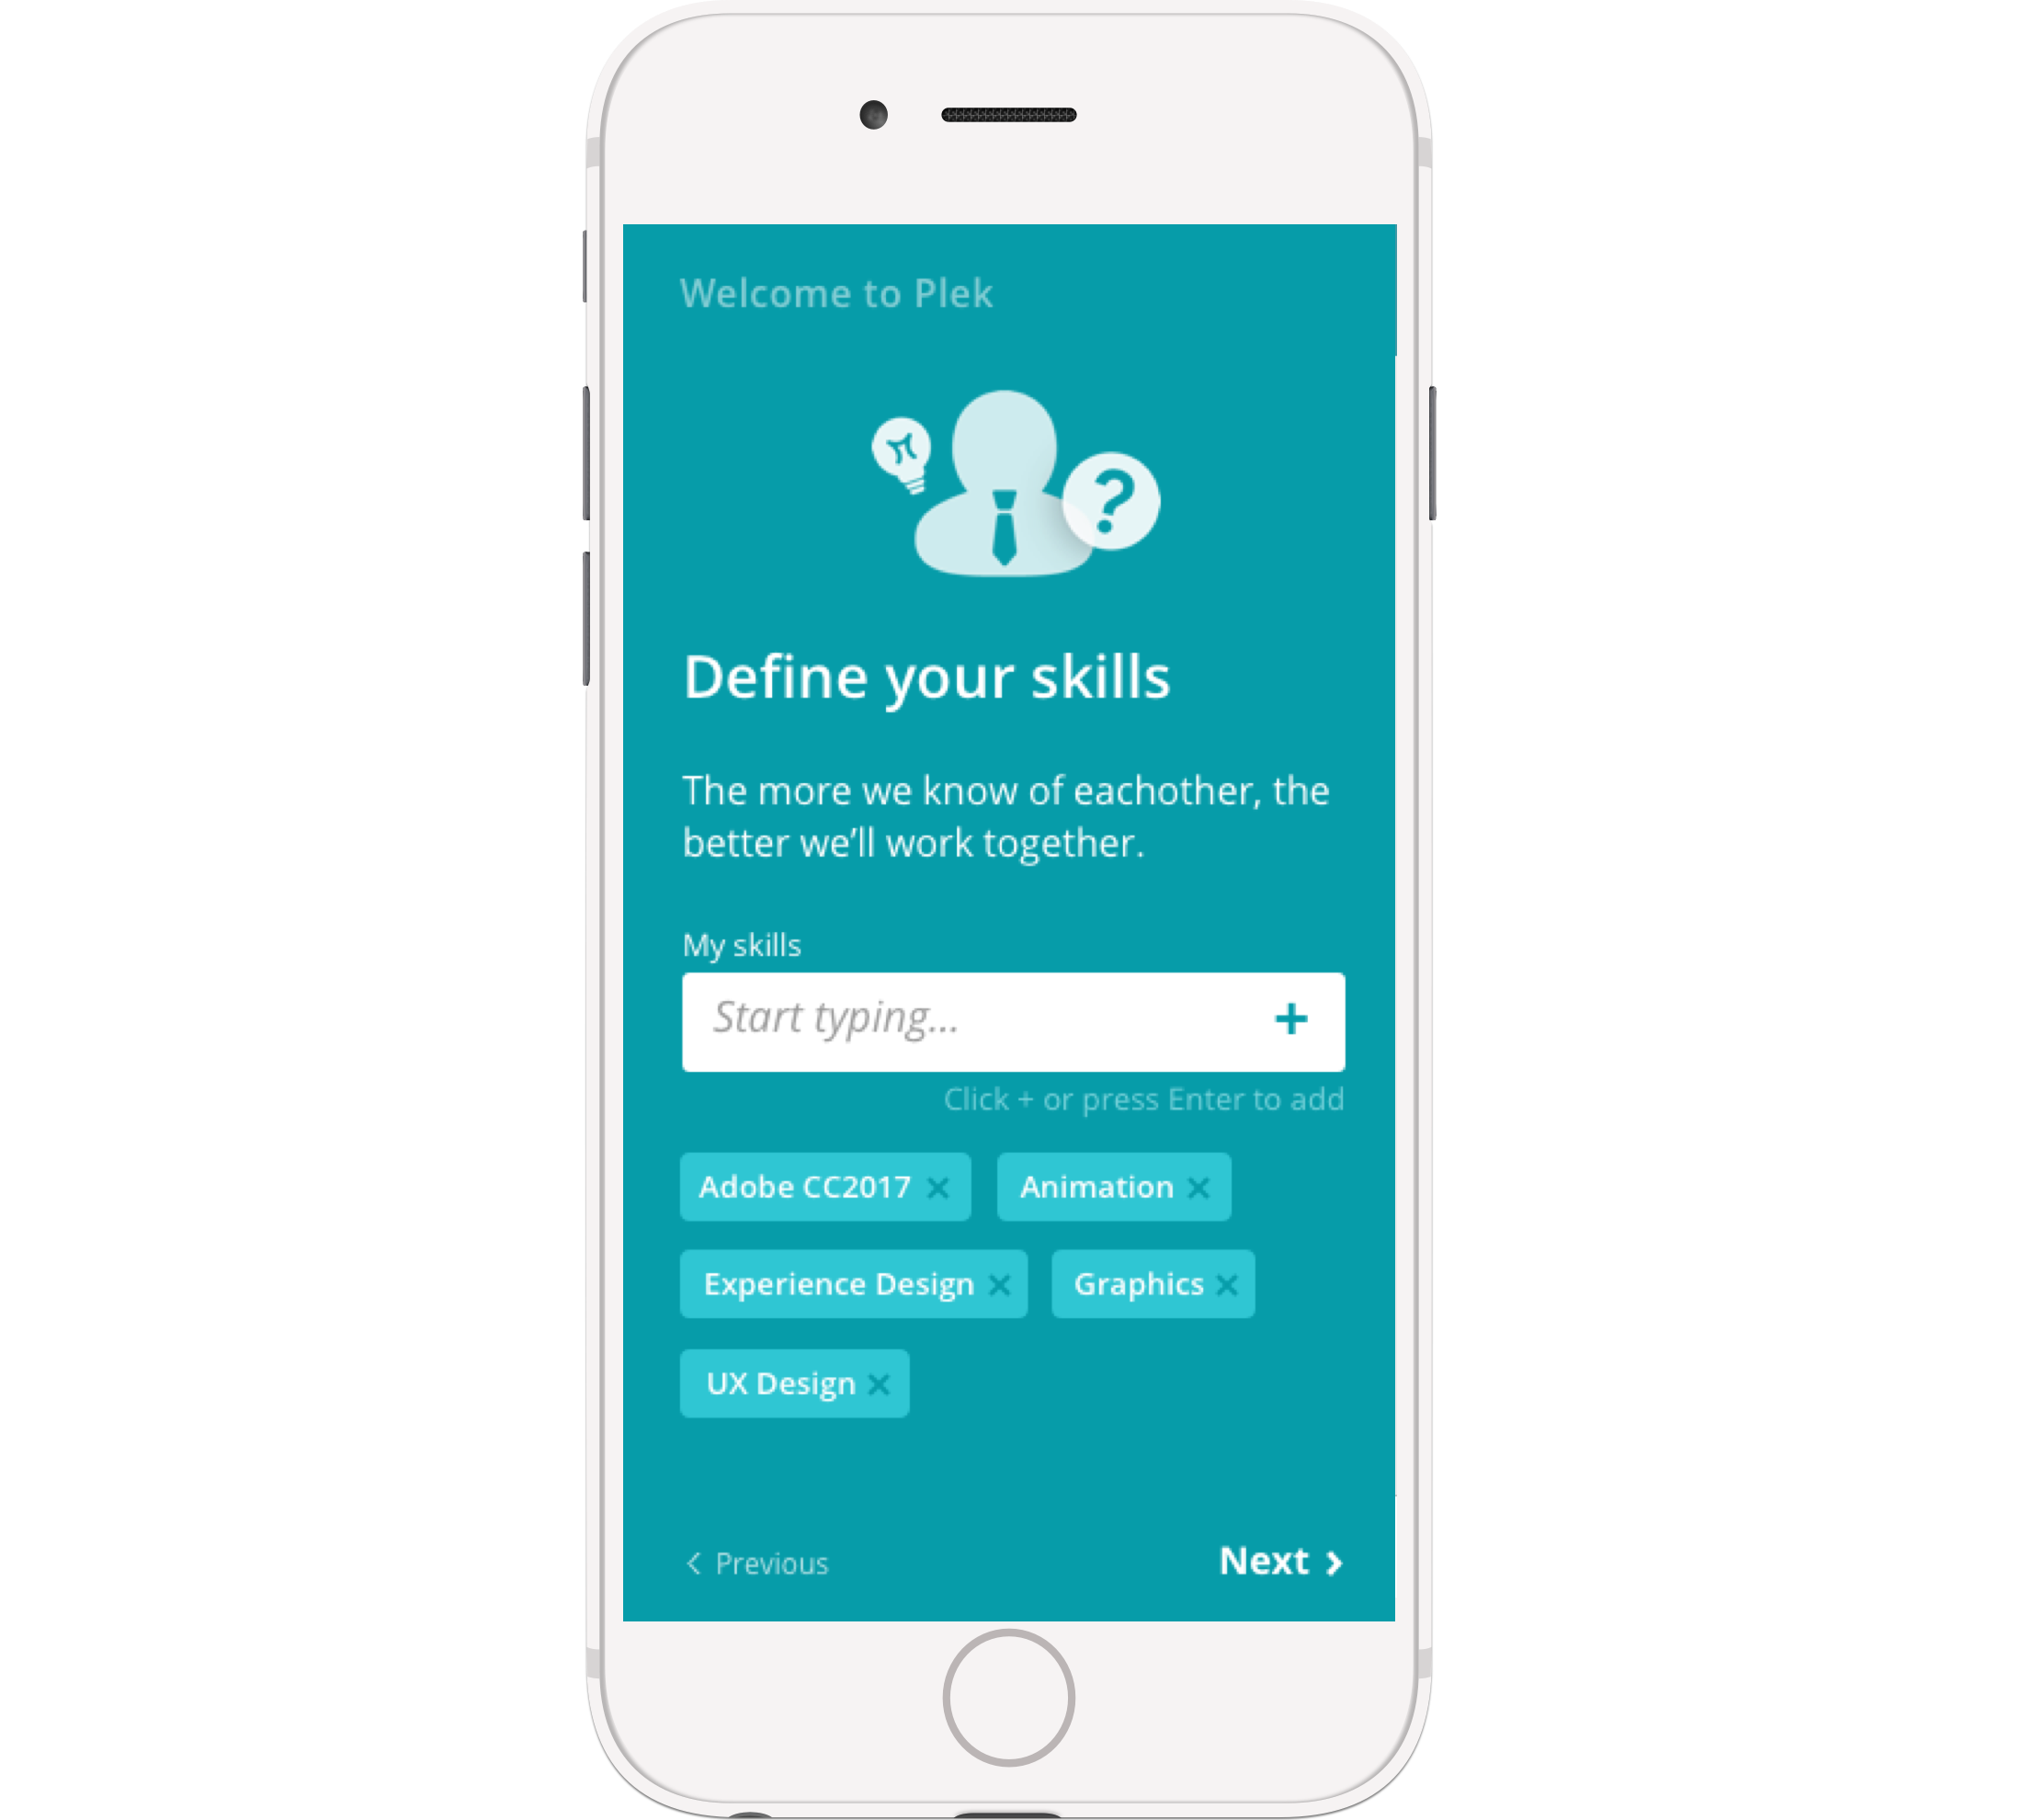 The onboarding can be customized for every organization. It can include, for example, group selection or skills. And profile picture, obviously!